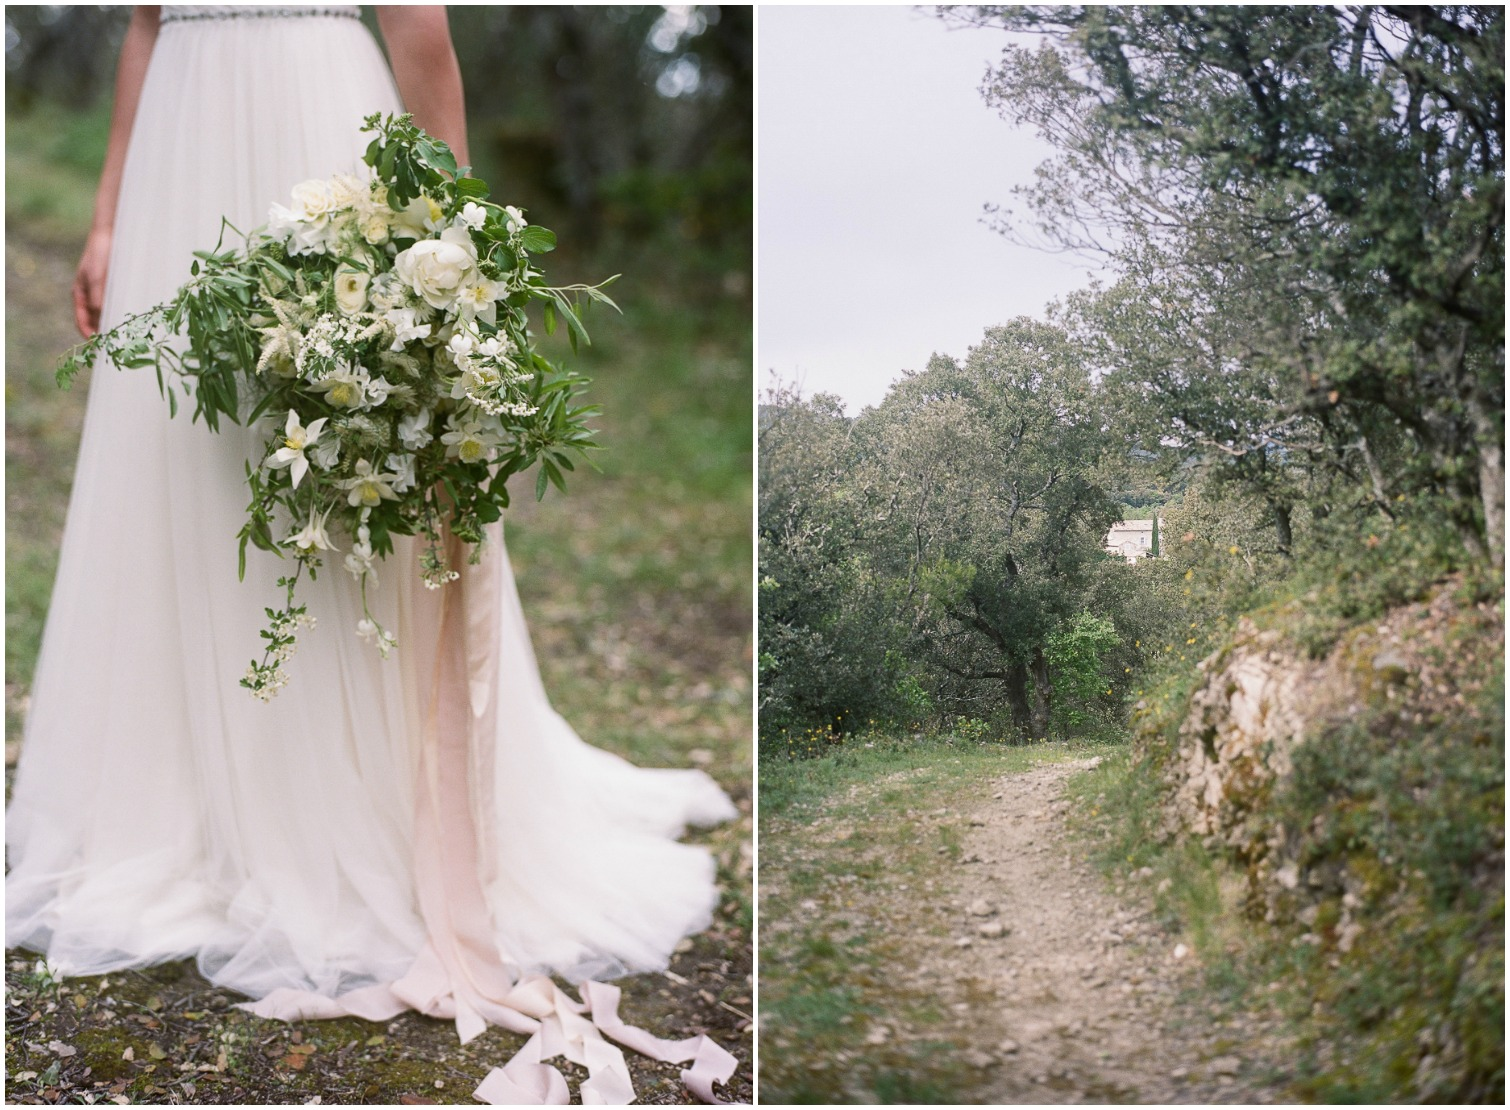 Romantic and ethereal wedding bouquet ©Celine Chhuon